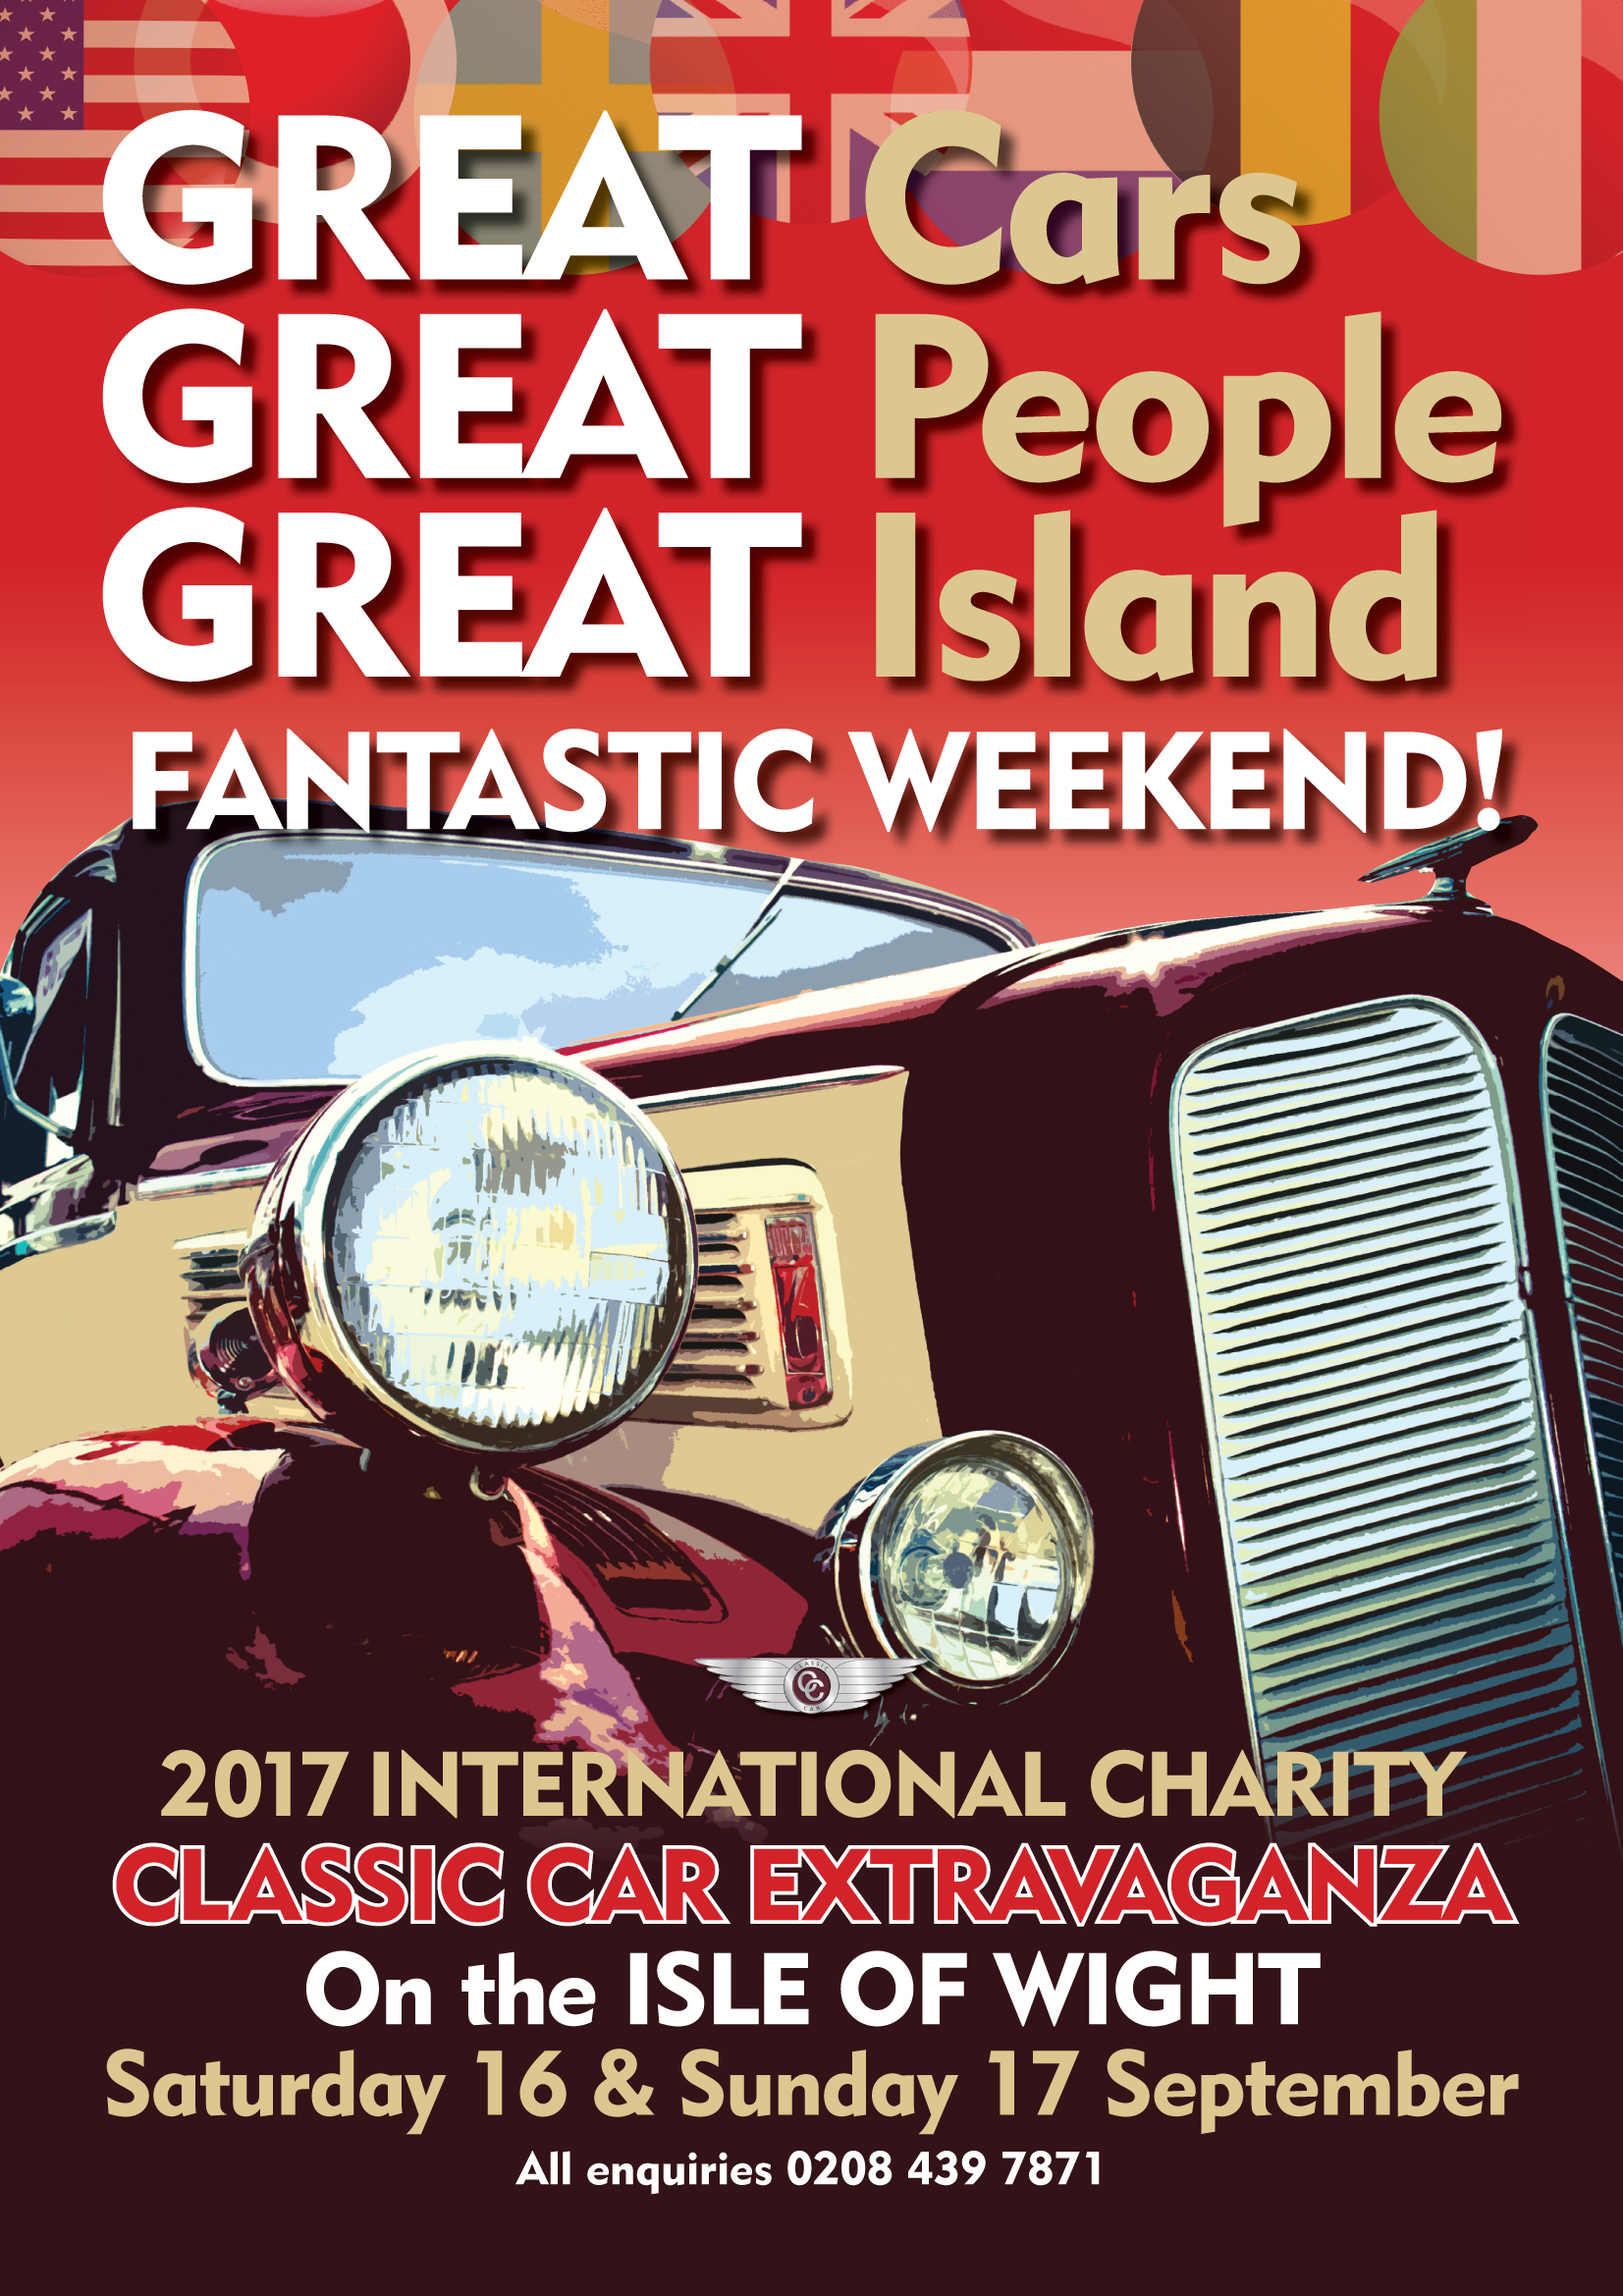 Isle of Wight Classic Cars 2017